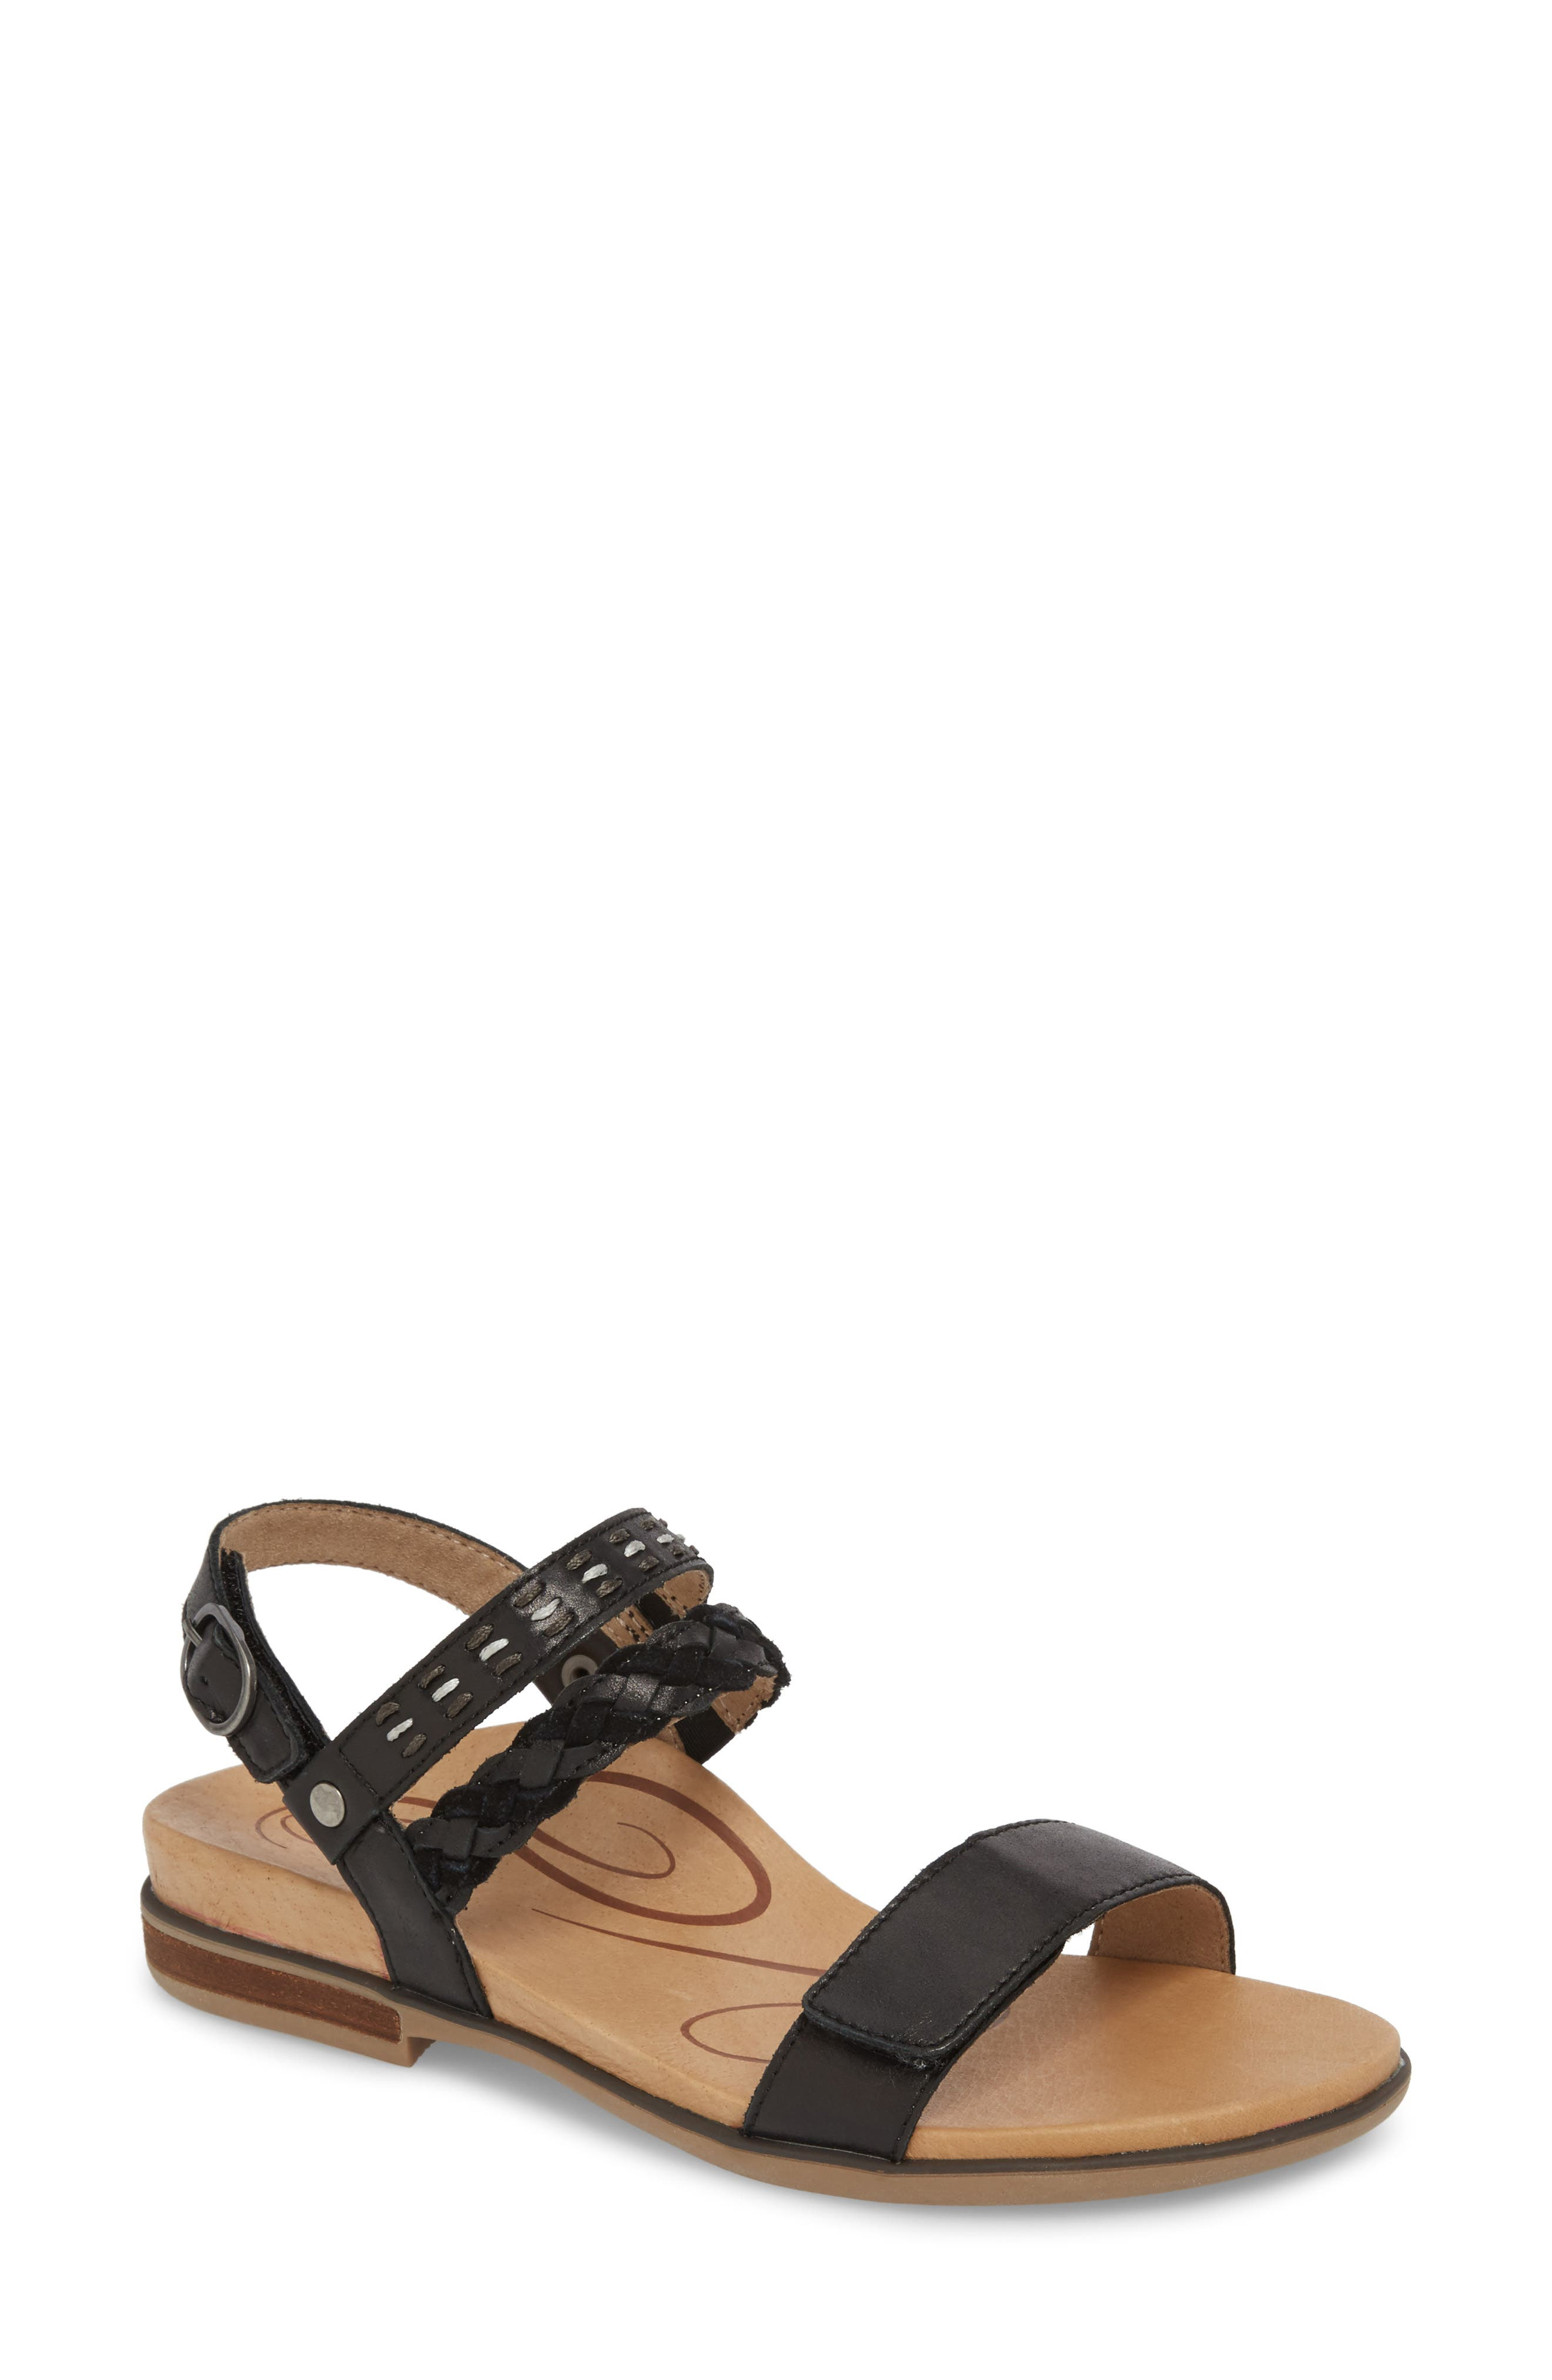 AETREX Celeste Sandal, Main, color, BLACK LEATHER